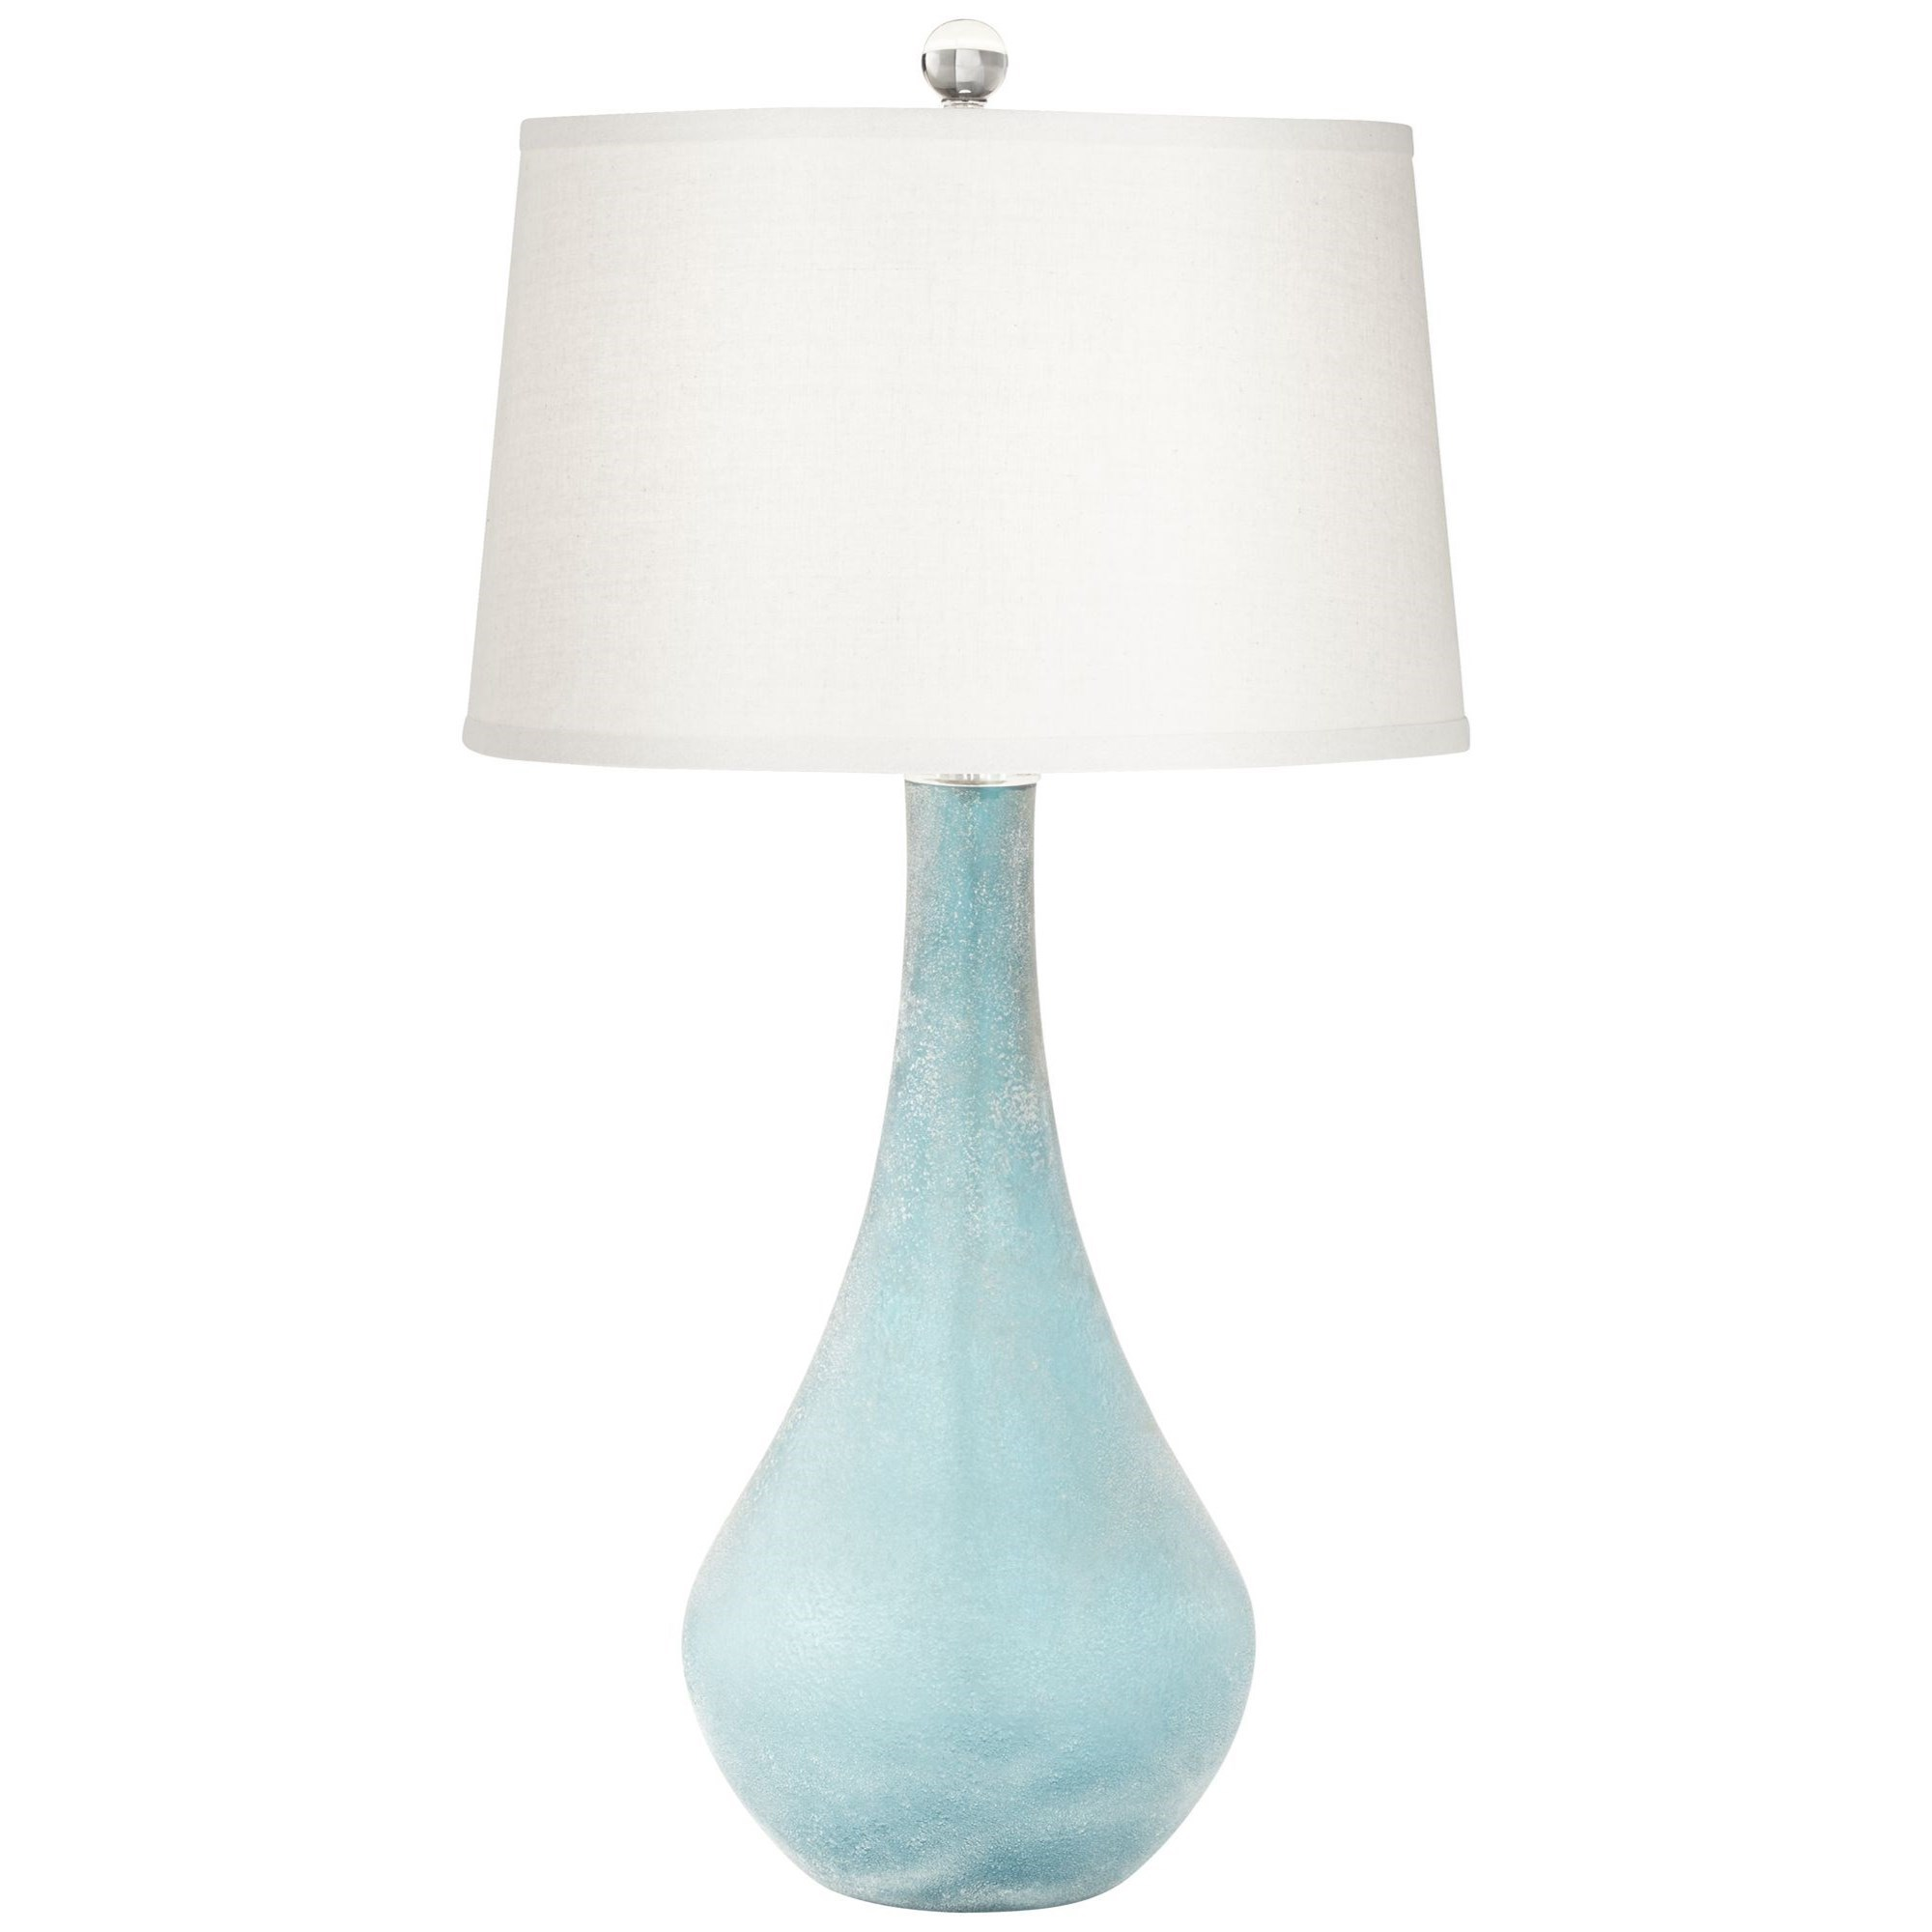 Table Lamps City Shadow Table Lamp at Bennett's Furniture and Mattresses